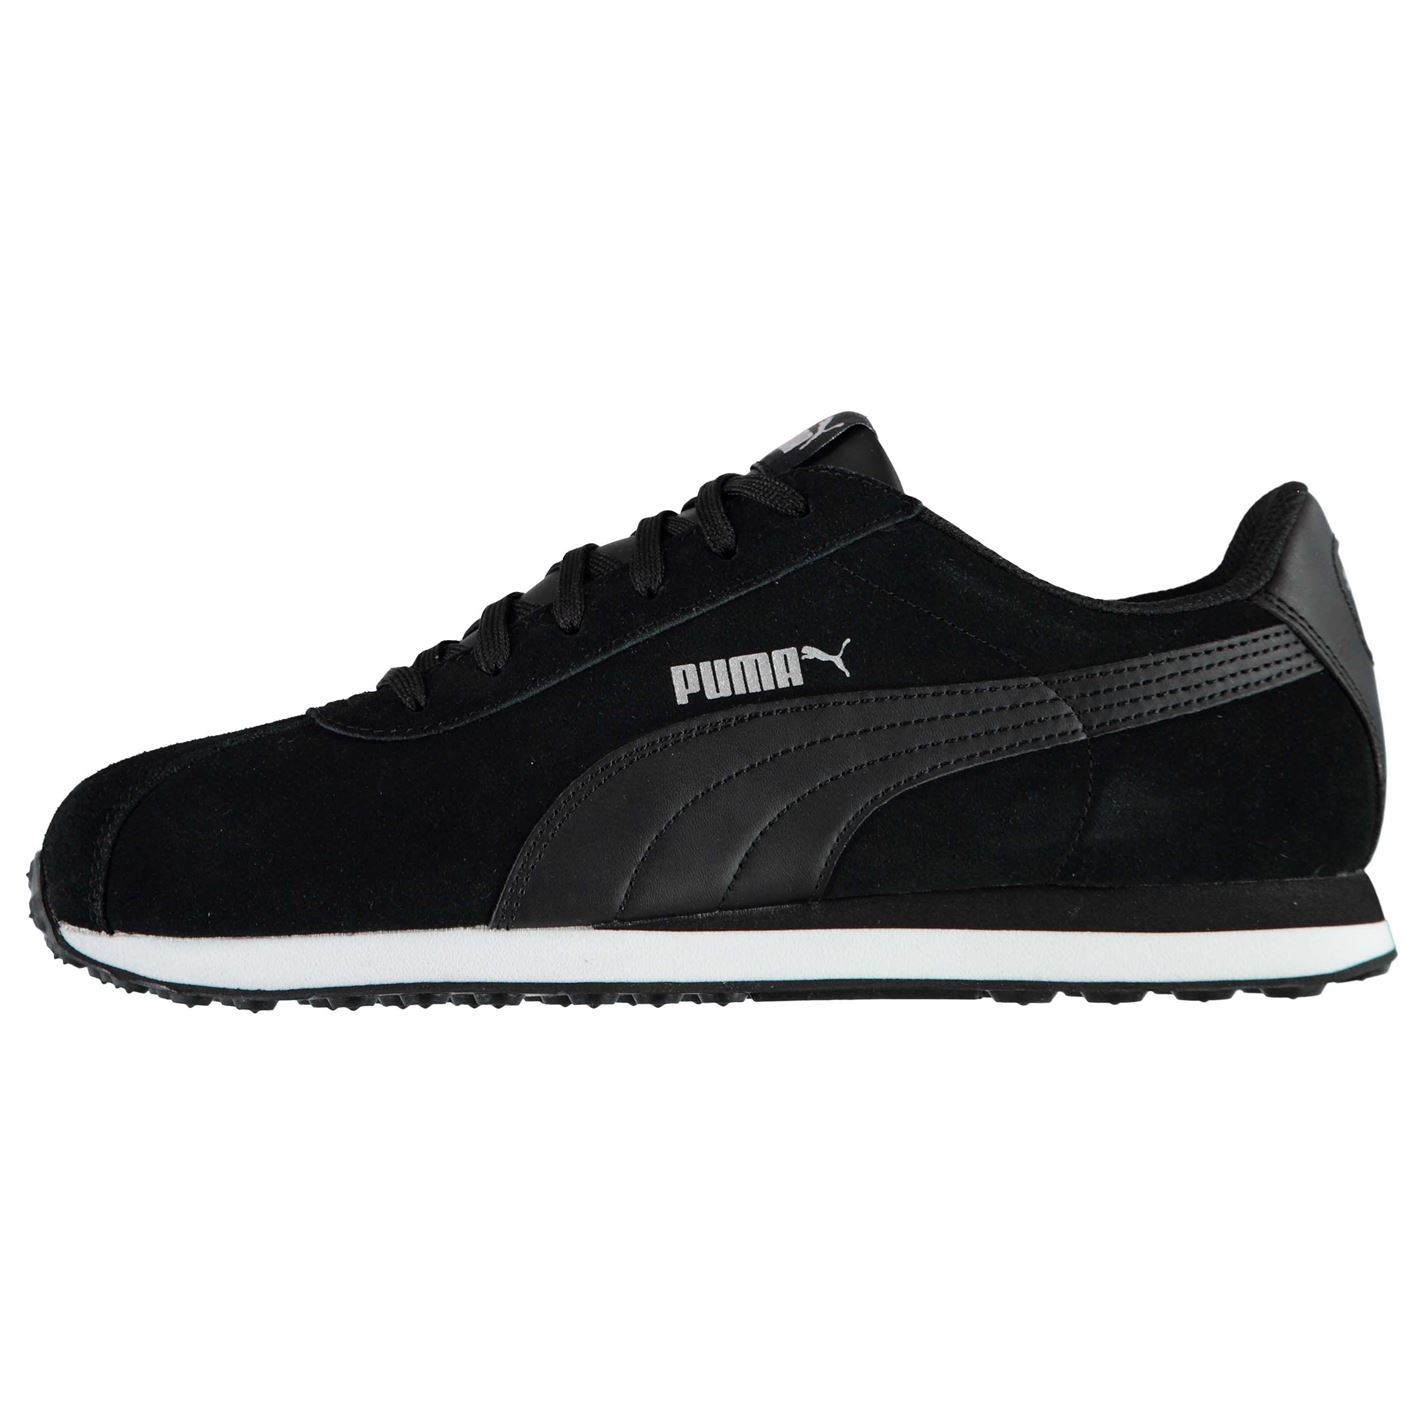 Image is loading Puma-Mens-Turin-Suede-Trainers-Runners-Lace-Up- 145b9bc74740